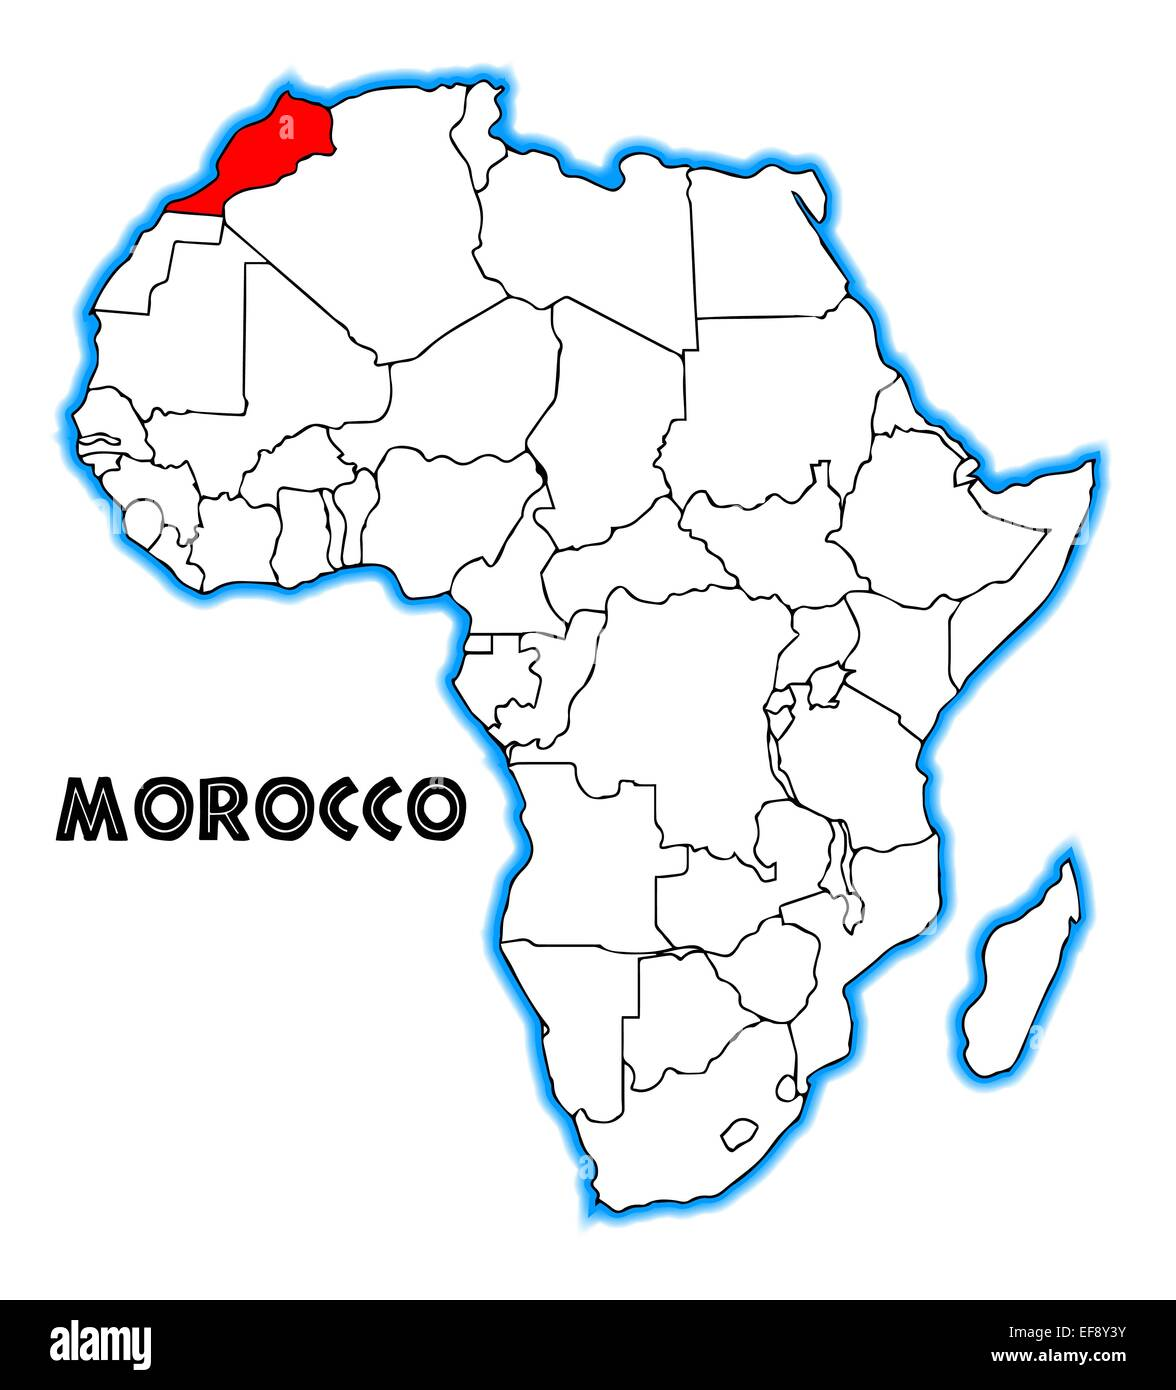 Morocco Outline Inset Into A Map Of Africa Over A White